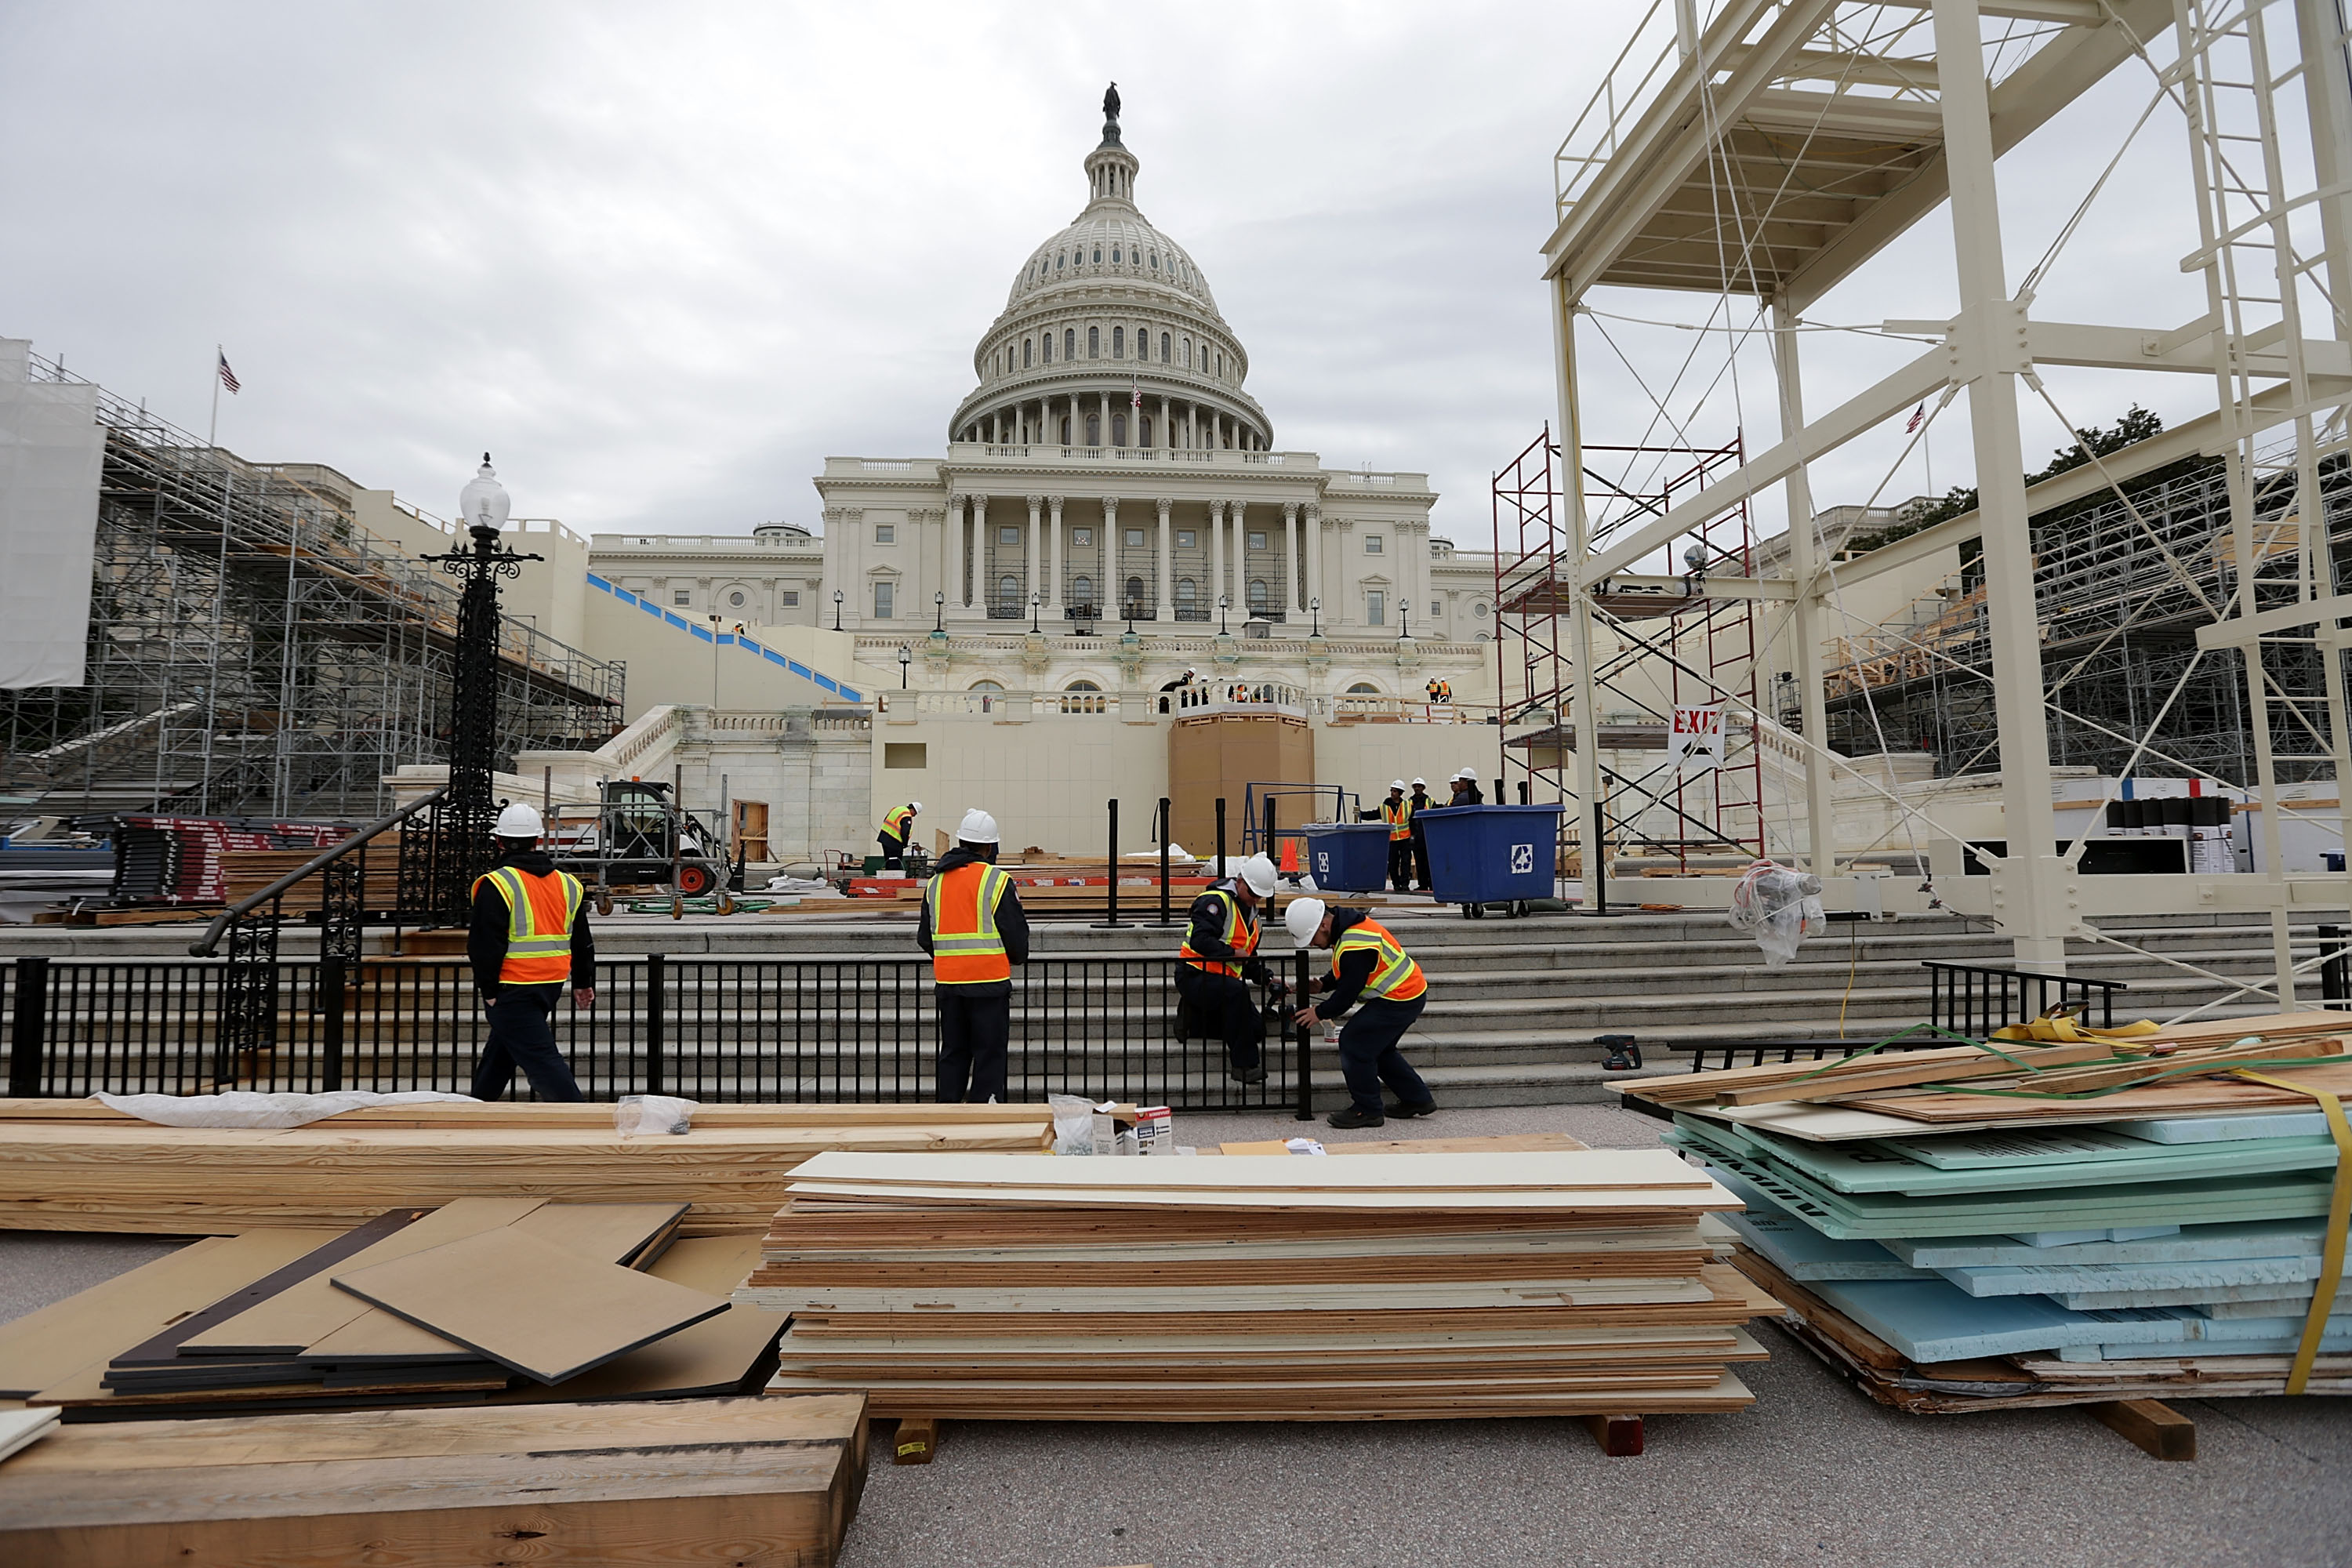 Employees of the Architect of the Capitol put up a fence at the West Front of the Capitol as construction of the 2017 presidential inaugural platform continues December 8, 2016 on Capitol Hill in Washington, DC. The inaugural platform will be used for swearing in the nation's 45th president Donald Trump on January 20, 2017.  (Getty Images)